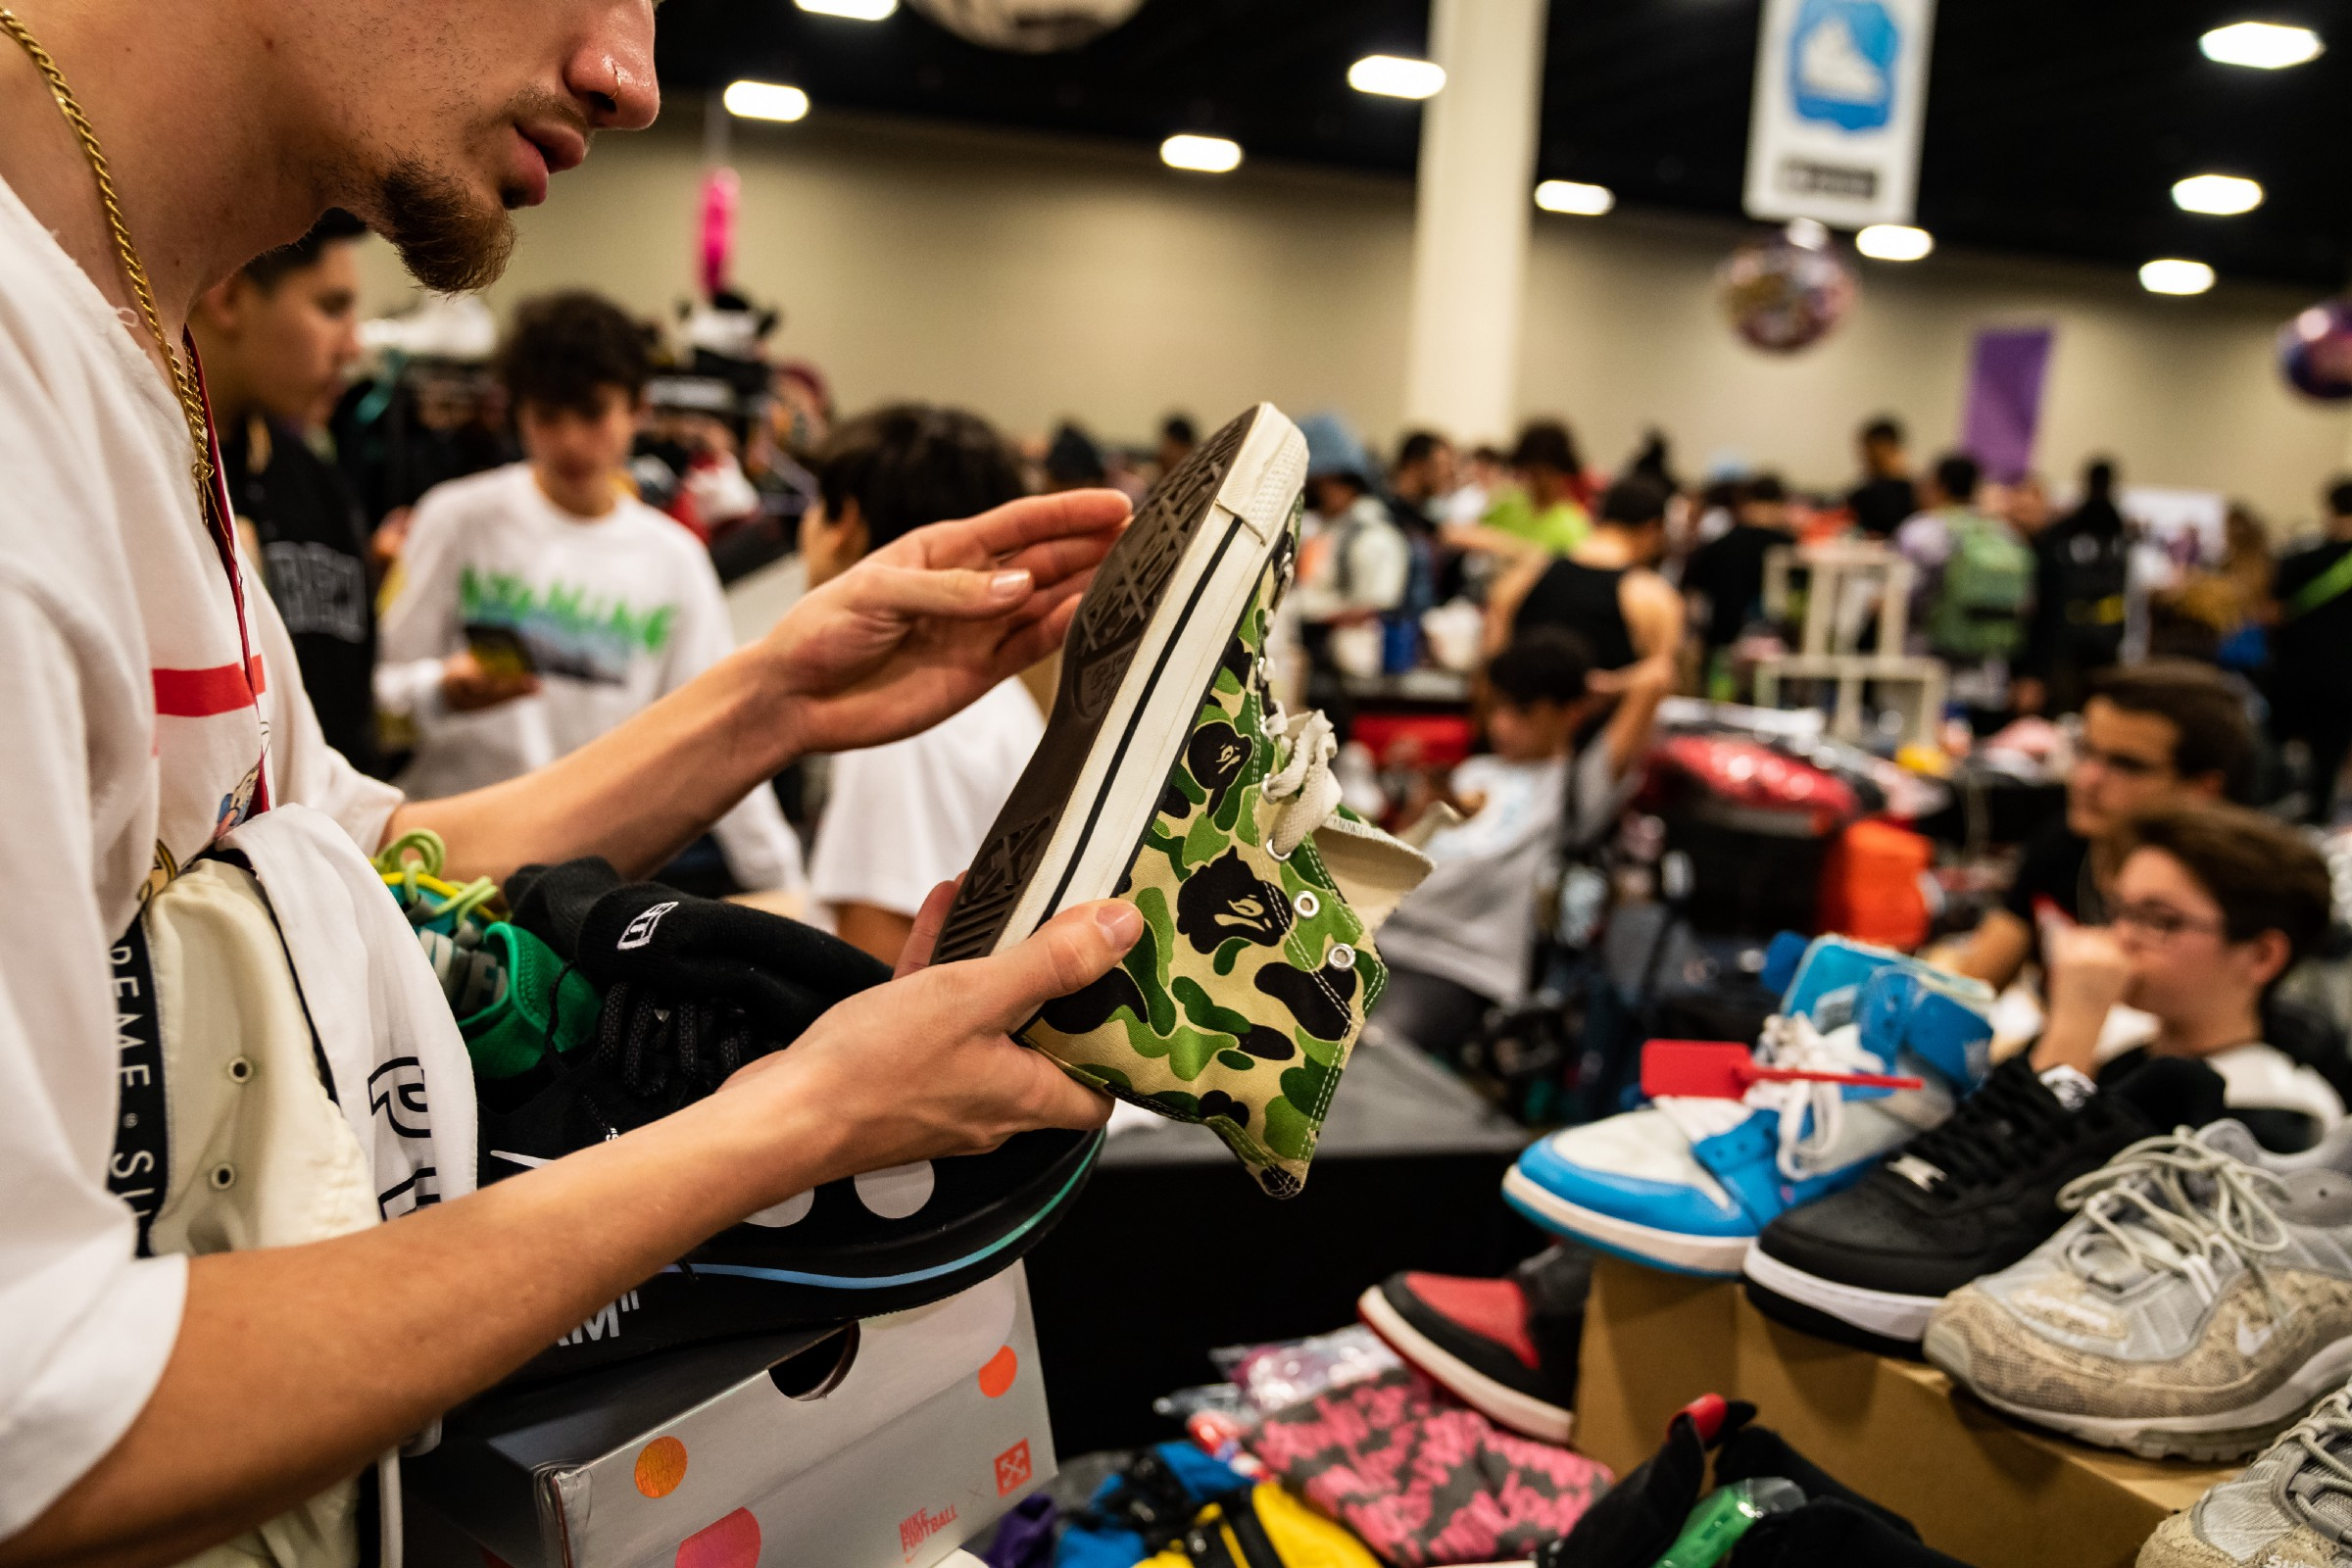 ddc77cdbb The Sneaker Swindle  Inside the Crusade to Sniff Out Fakes